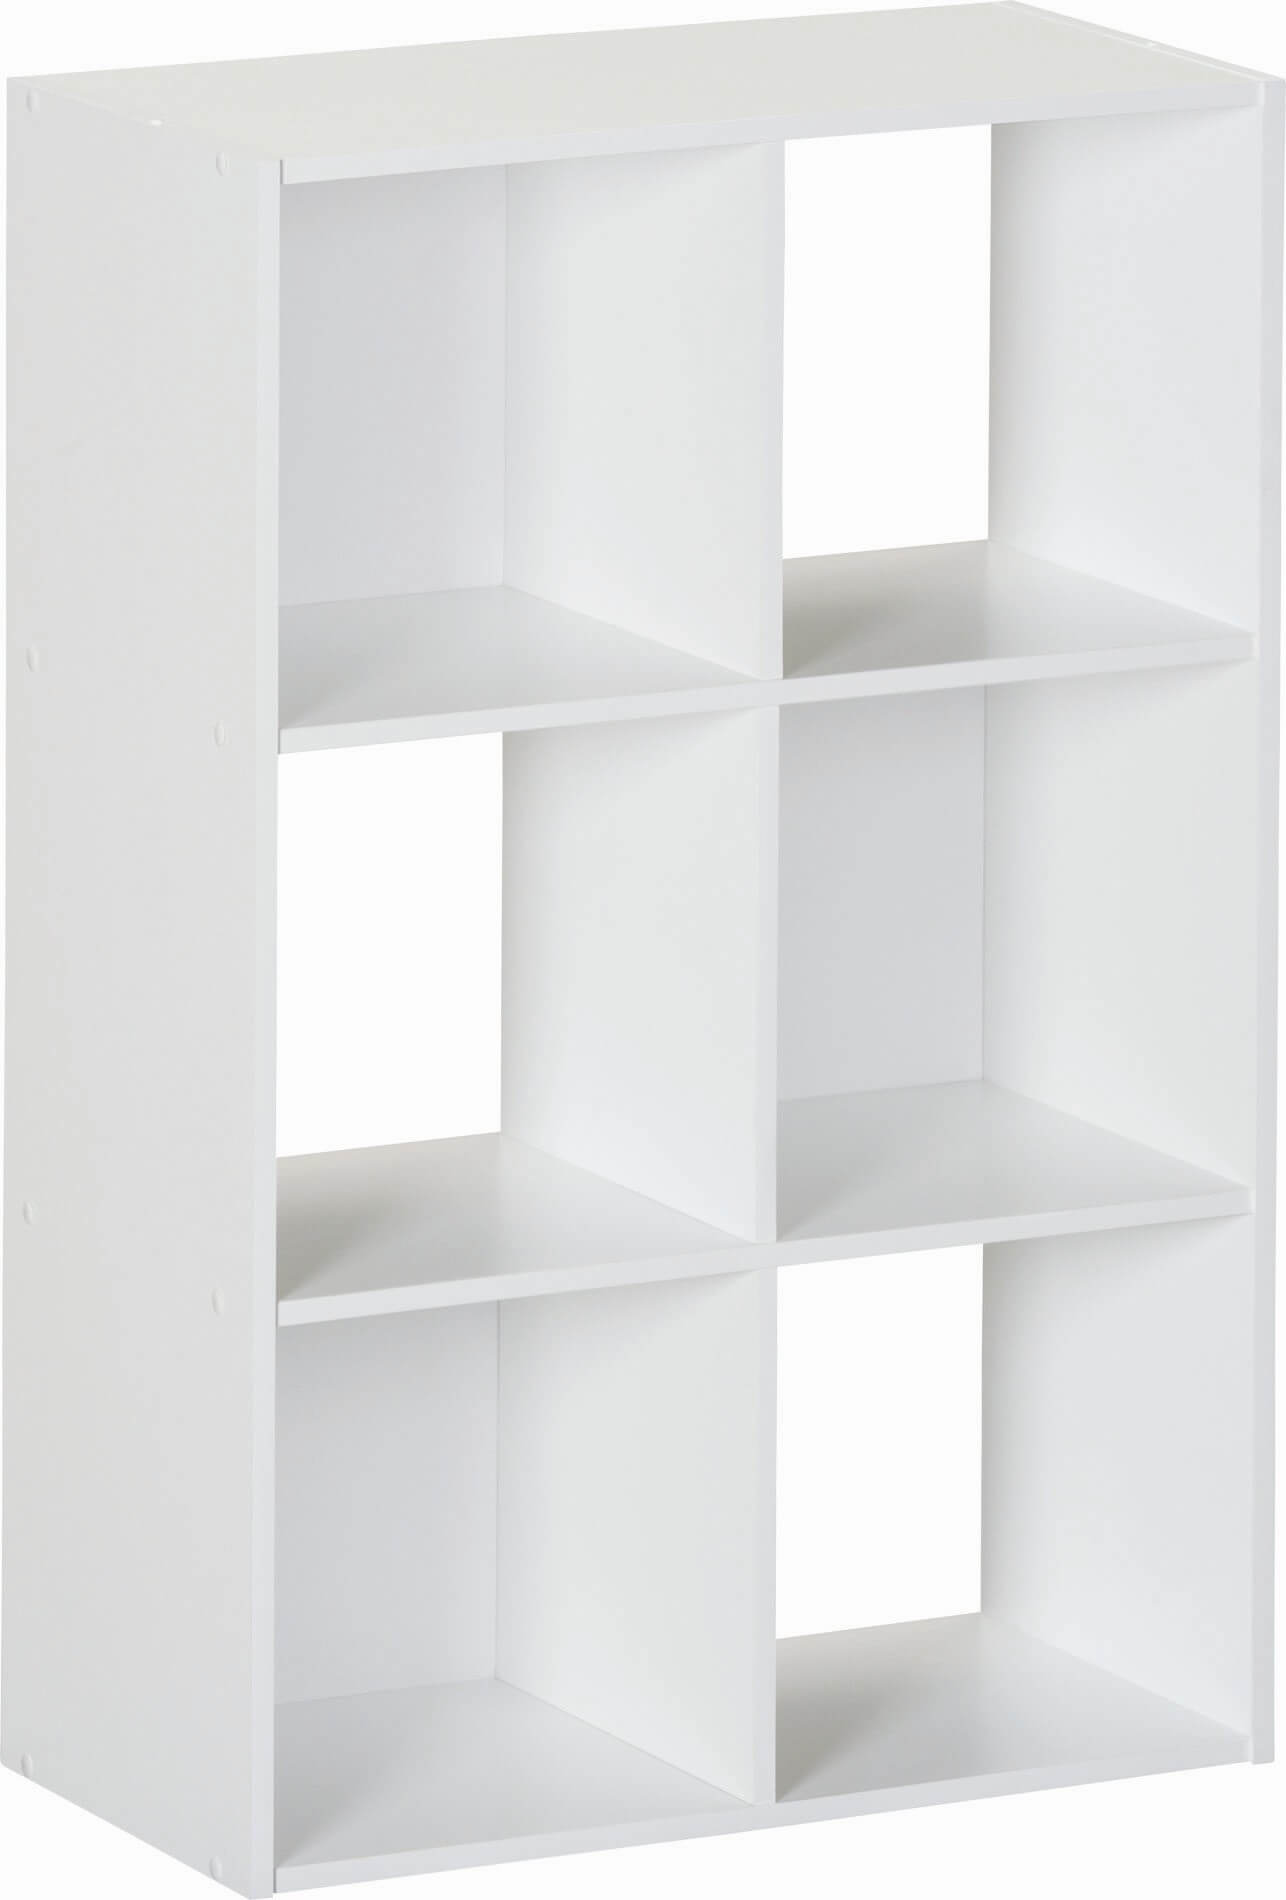 Here's a checkered-style 6-cube white shelf. The checkered backing pattern creates an interesting design (yet it's very simple).